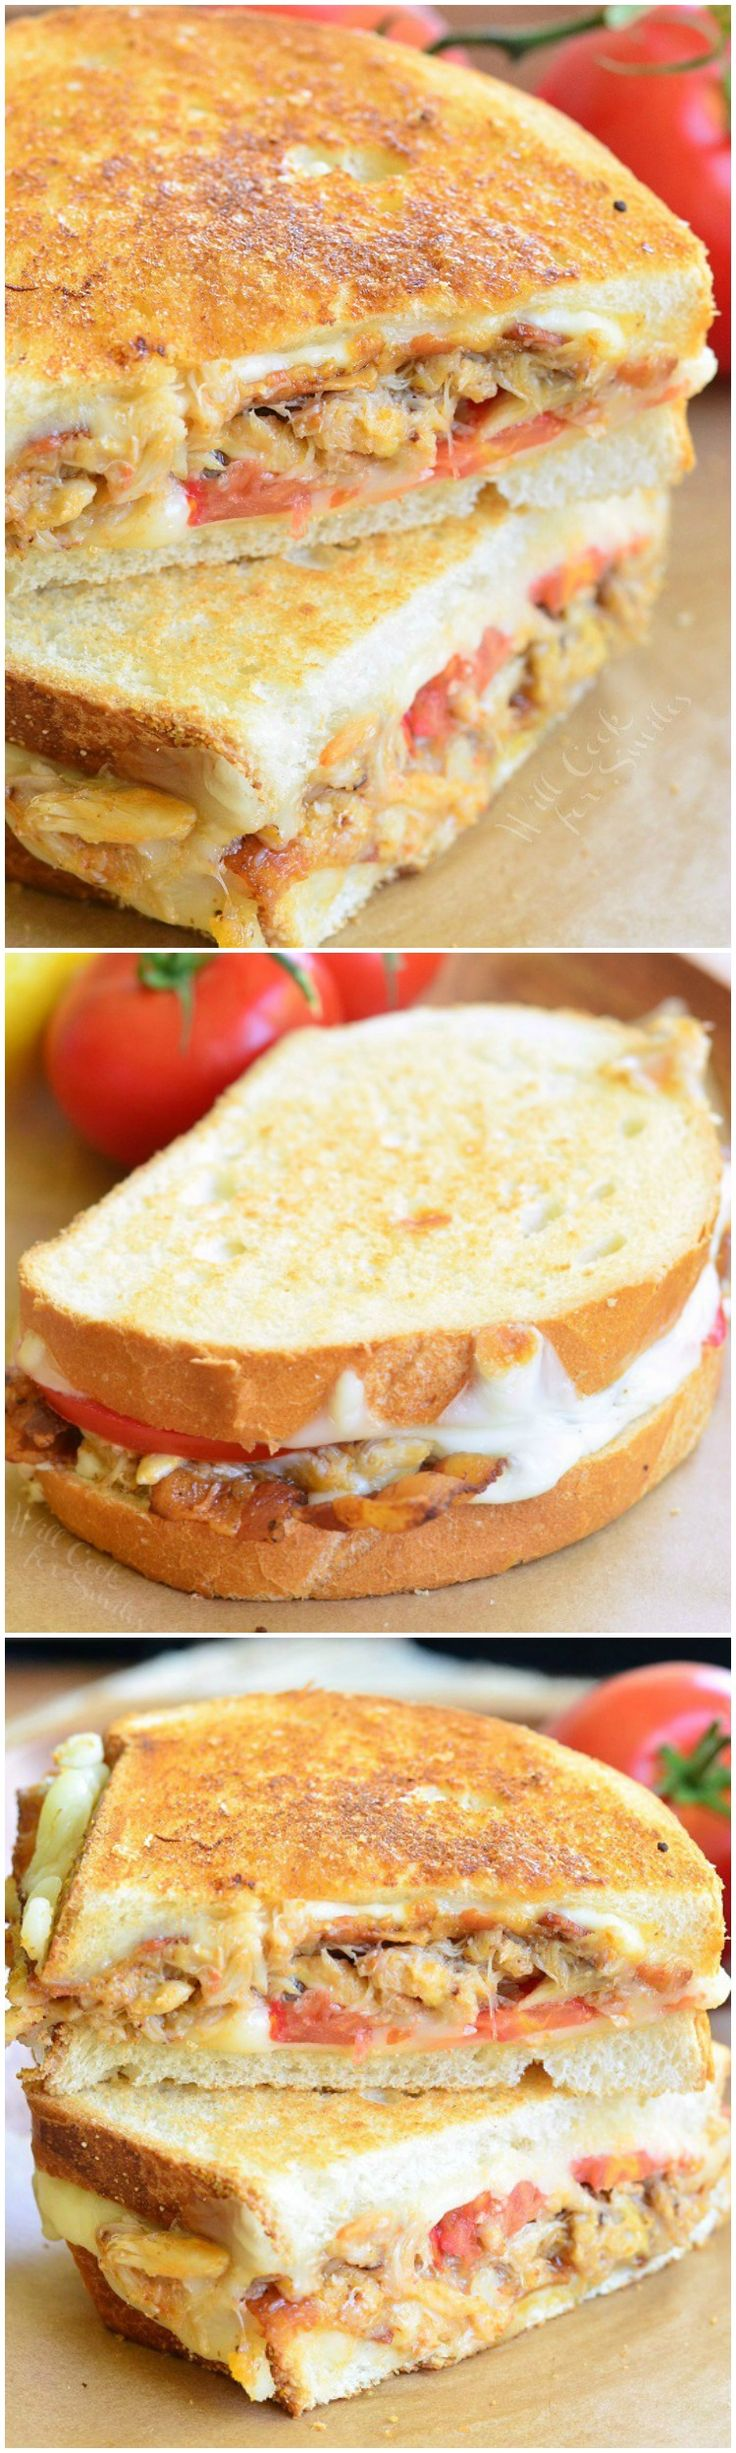 Tomato, Bacon and Crab Grilled Cheese. Finger-licking sandwich created just for SEAFOOD lovers. All your DELICIOUS wishes came true! #sandwich